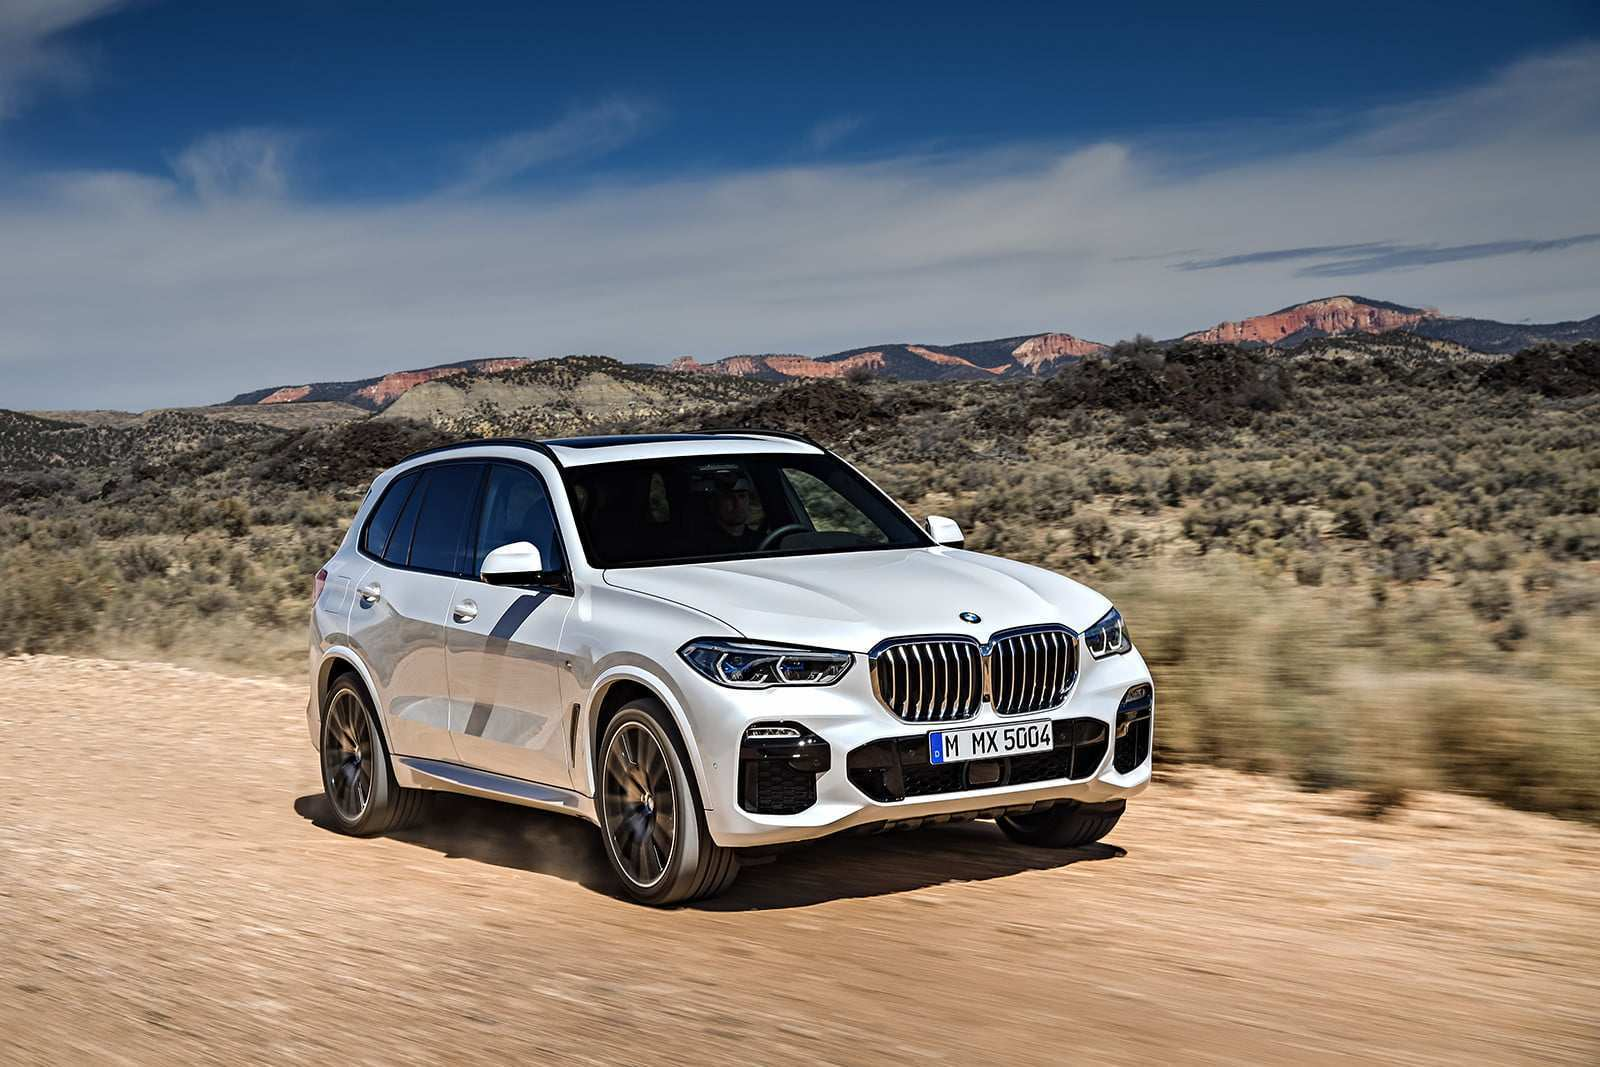 38 Concept of When Is The Bmw X5 2019 Release Date Engine Exterior and Interior for When Is The Bmw X5 2019 Release Date Engine